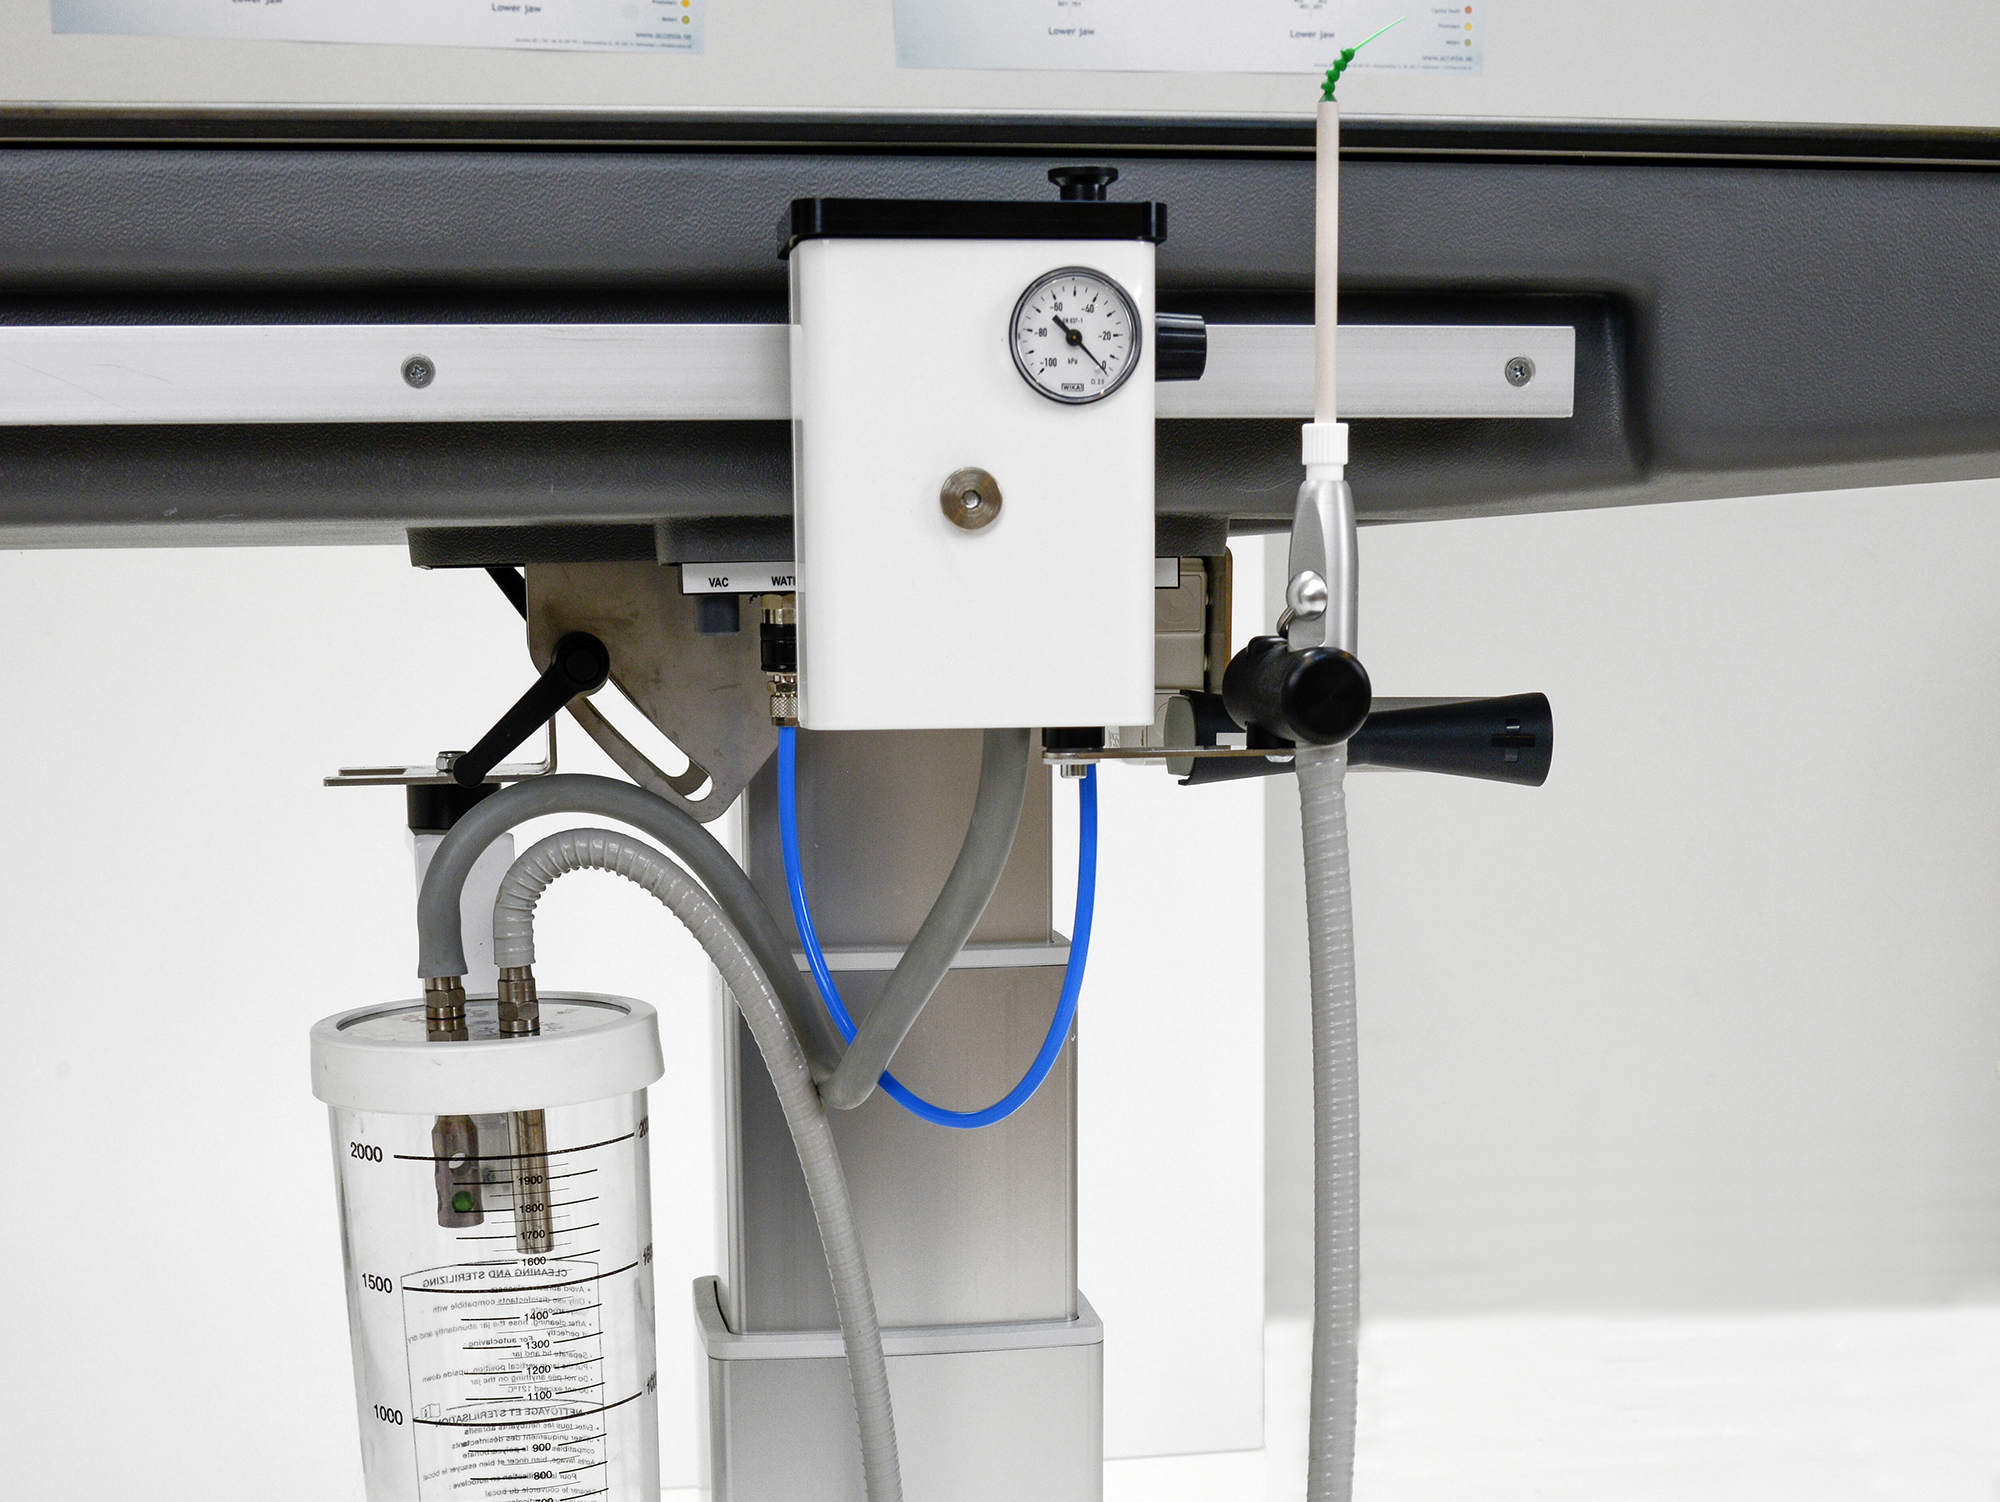 INTEGRATED SUCTION SYSTEM